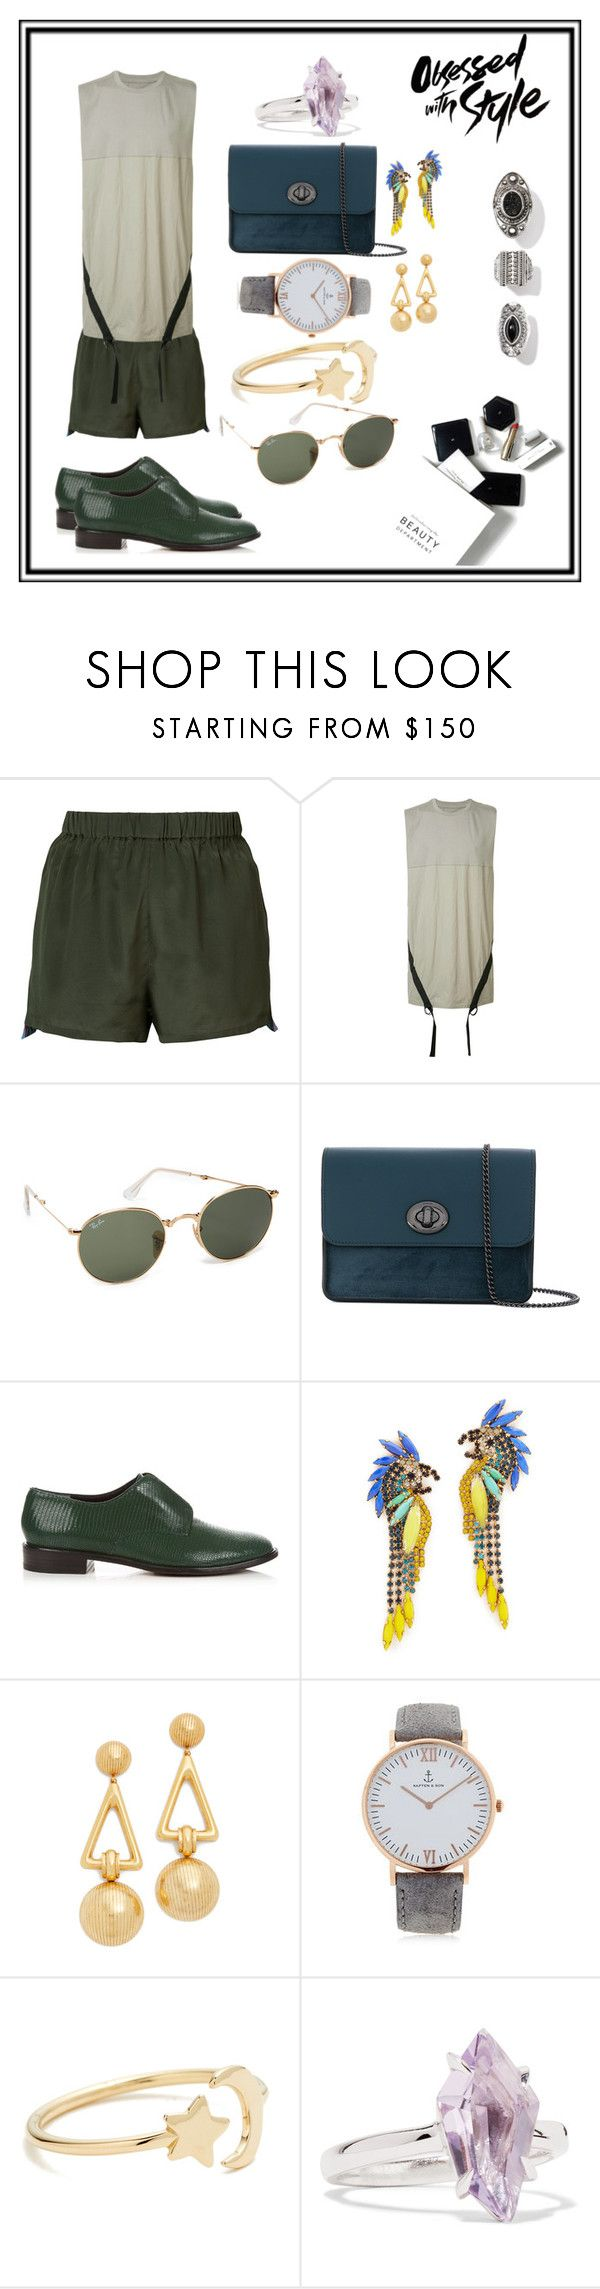 """""""beauty one style¶"""" by racheal-taylor ❤ liked on Polyvore featuring Figue, Bmuet(Te), Ray-Ban, Coach, Robert Clergerie, Elizabeth Cole, Kapten & Son, Ariel Gordon, Alexis Bittar and H&M"""